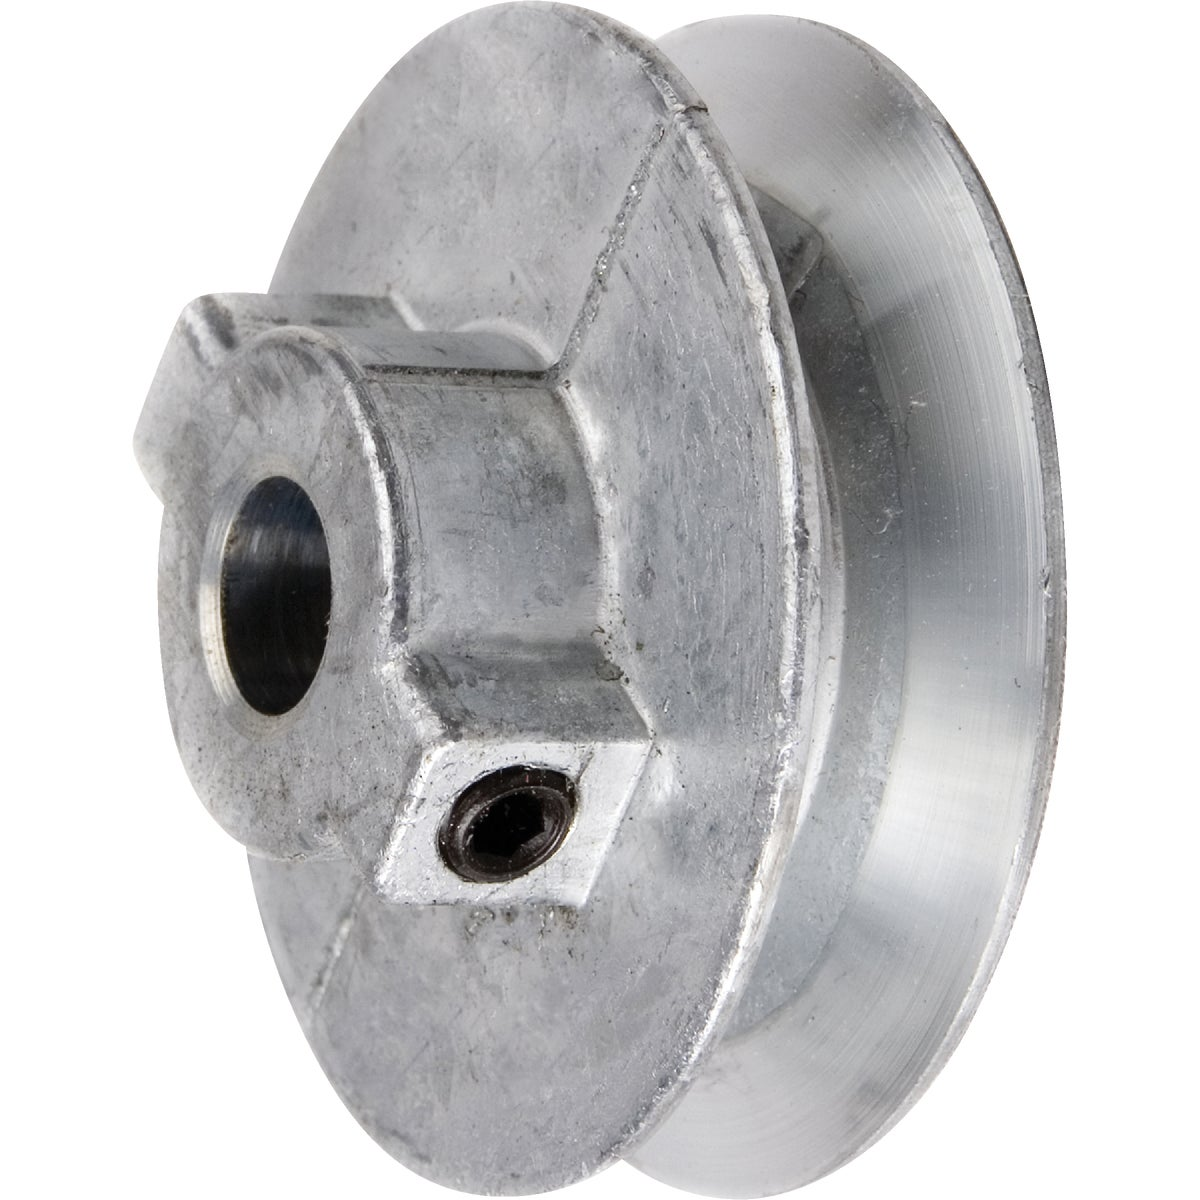 2-3/4X3/4 PULLEY - 275A7 by Chicago Die Casting